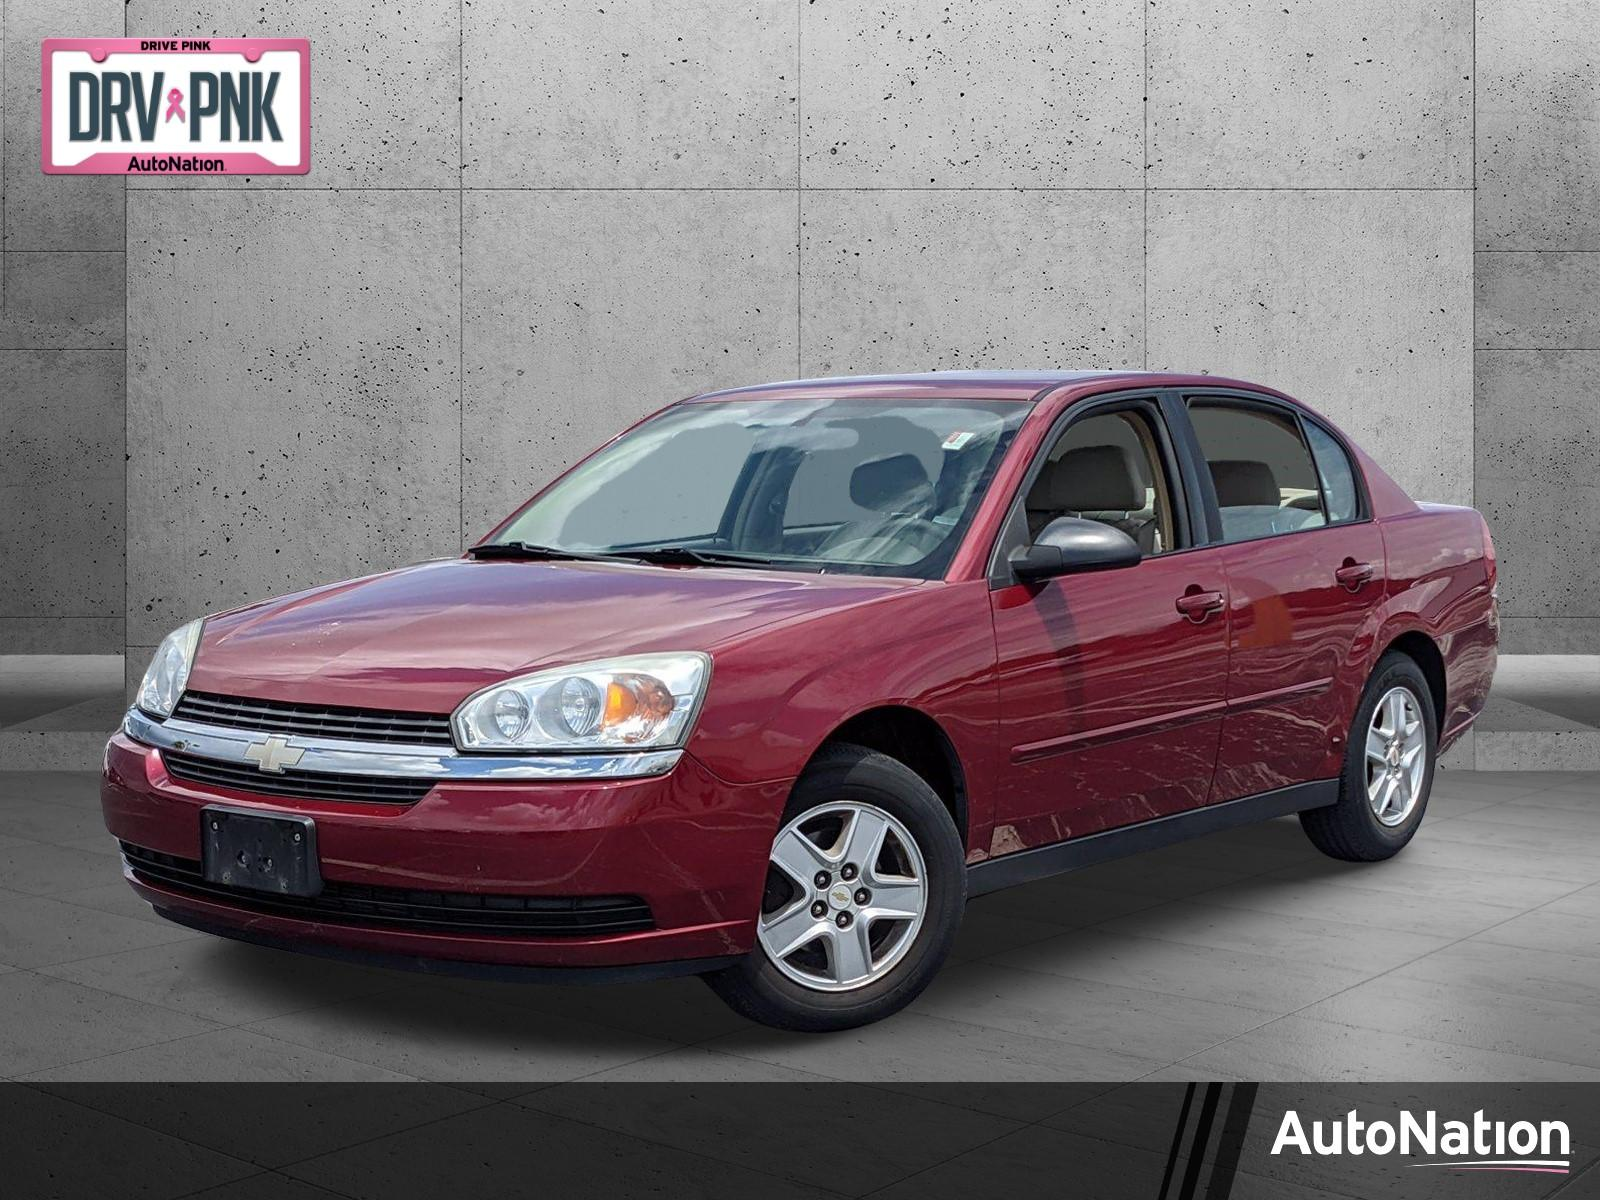 Pre-Owned 2005 Chevrolet Malibu 4dr Sdn LS